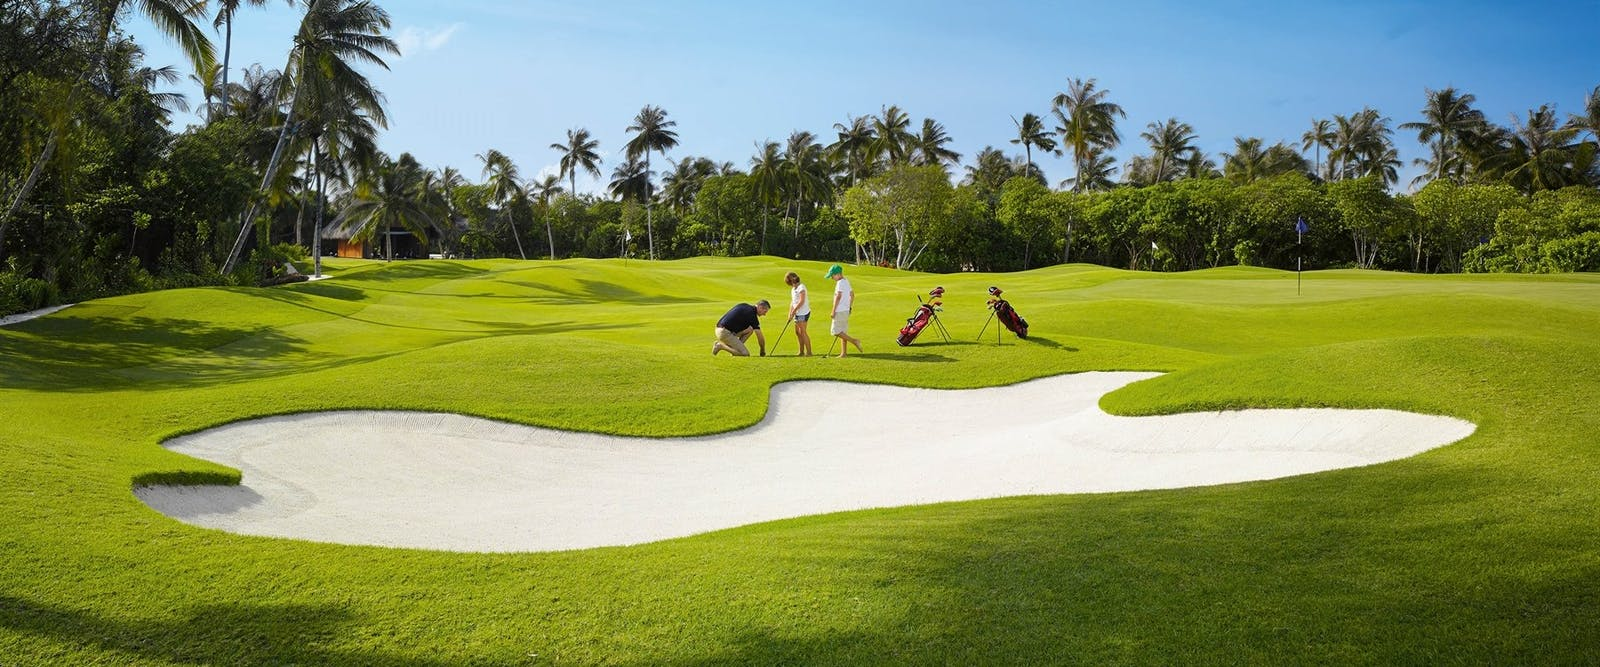 Golf Academy and 9-hole Golf Course at Velaa Private Island, Maldives,  Indian Ocean